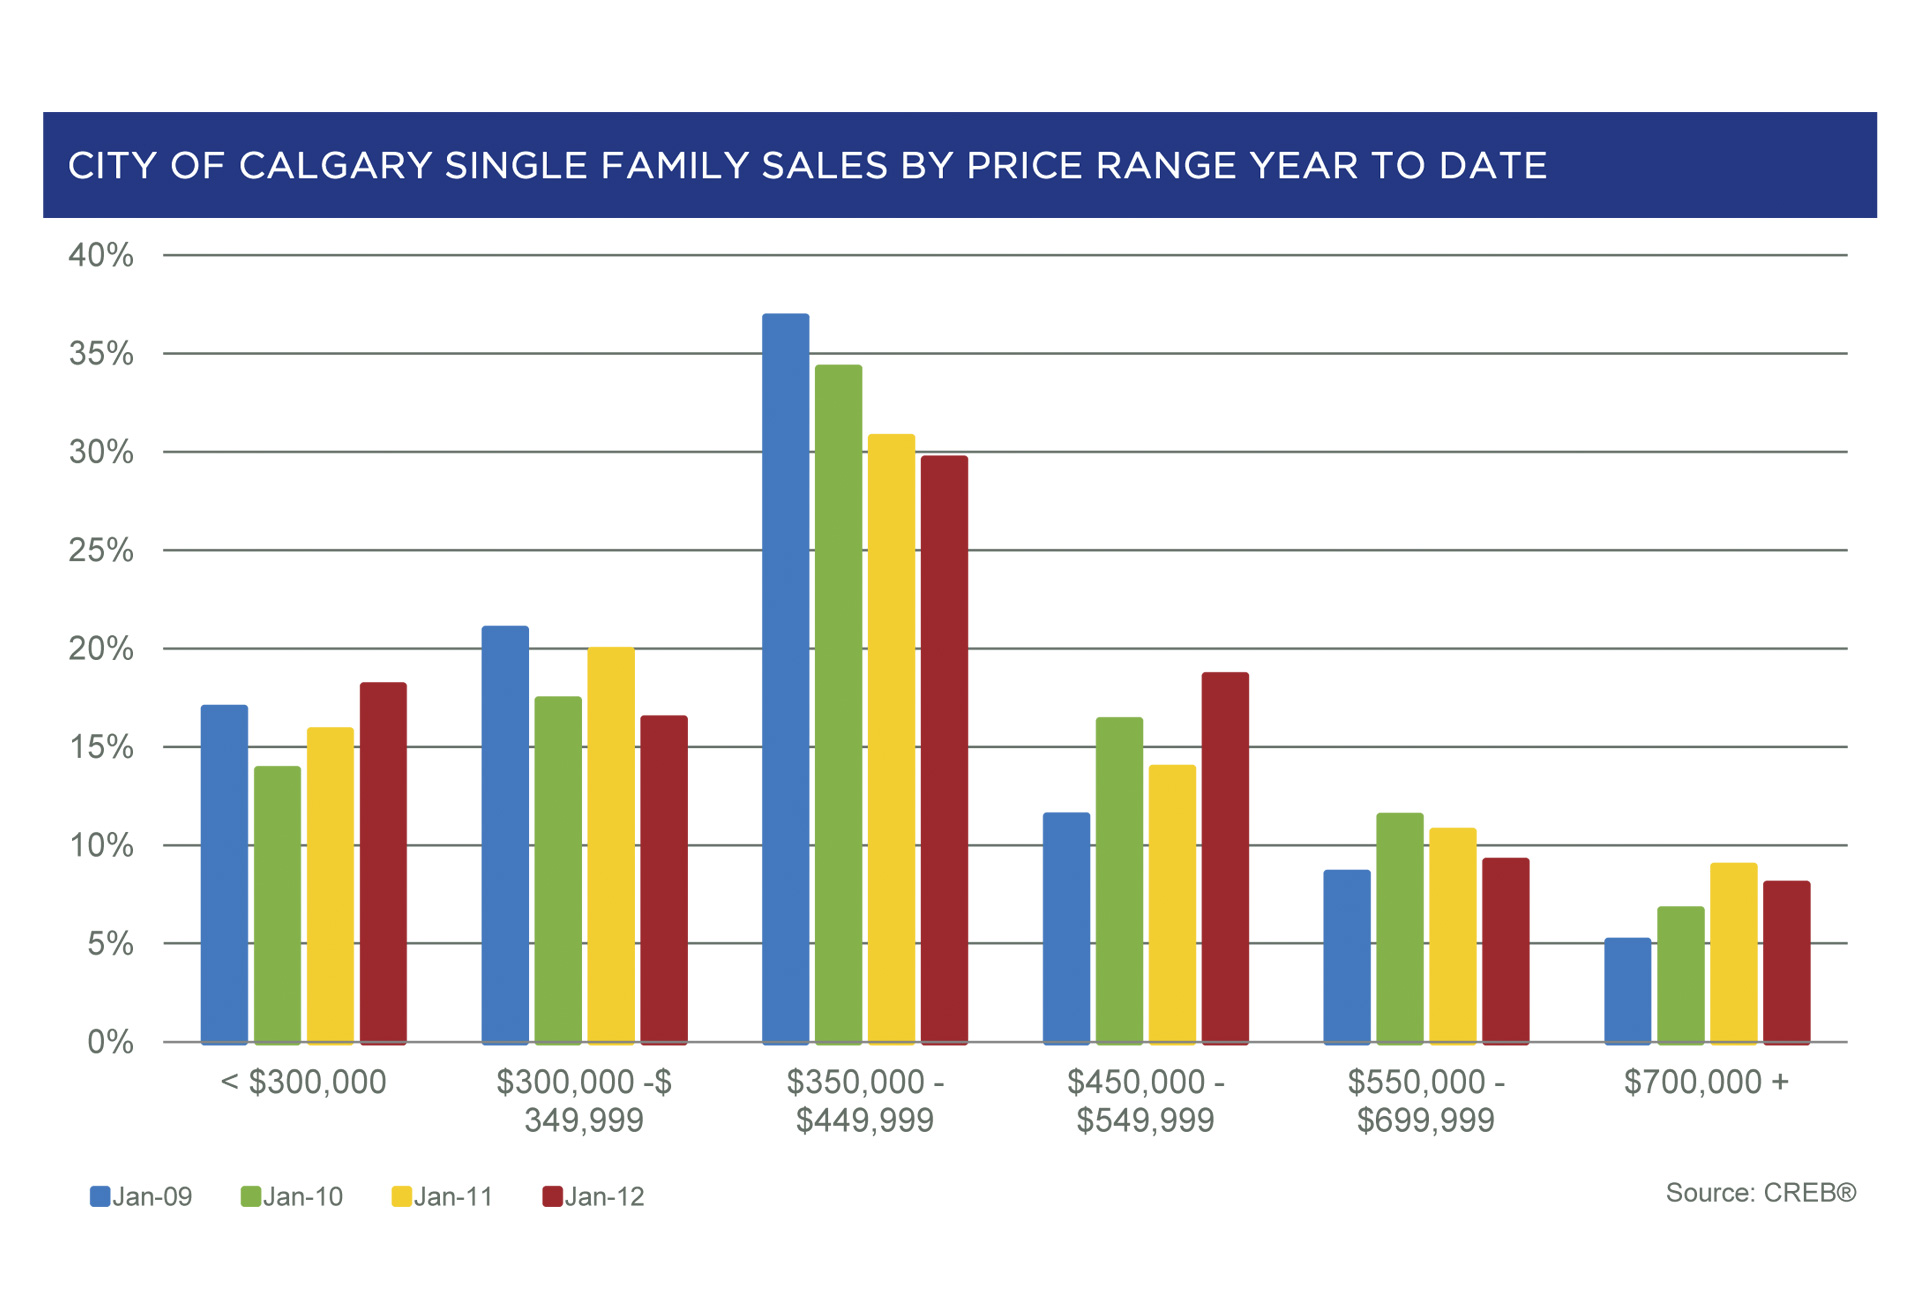 City of Calgary Single Family Home Sales by Price Range